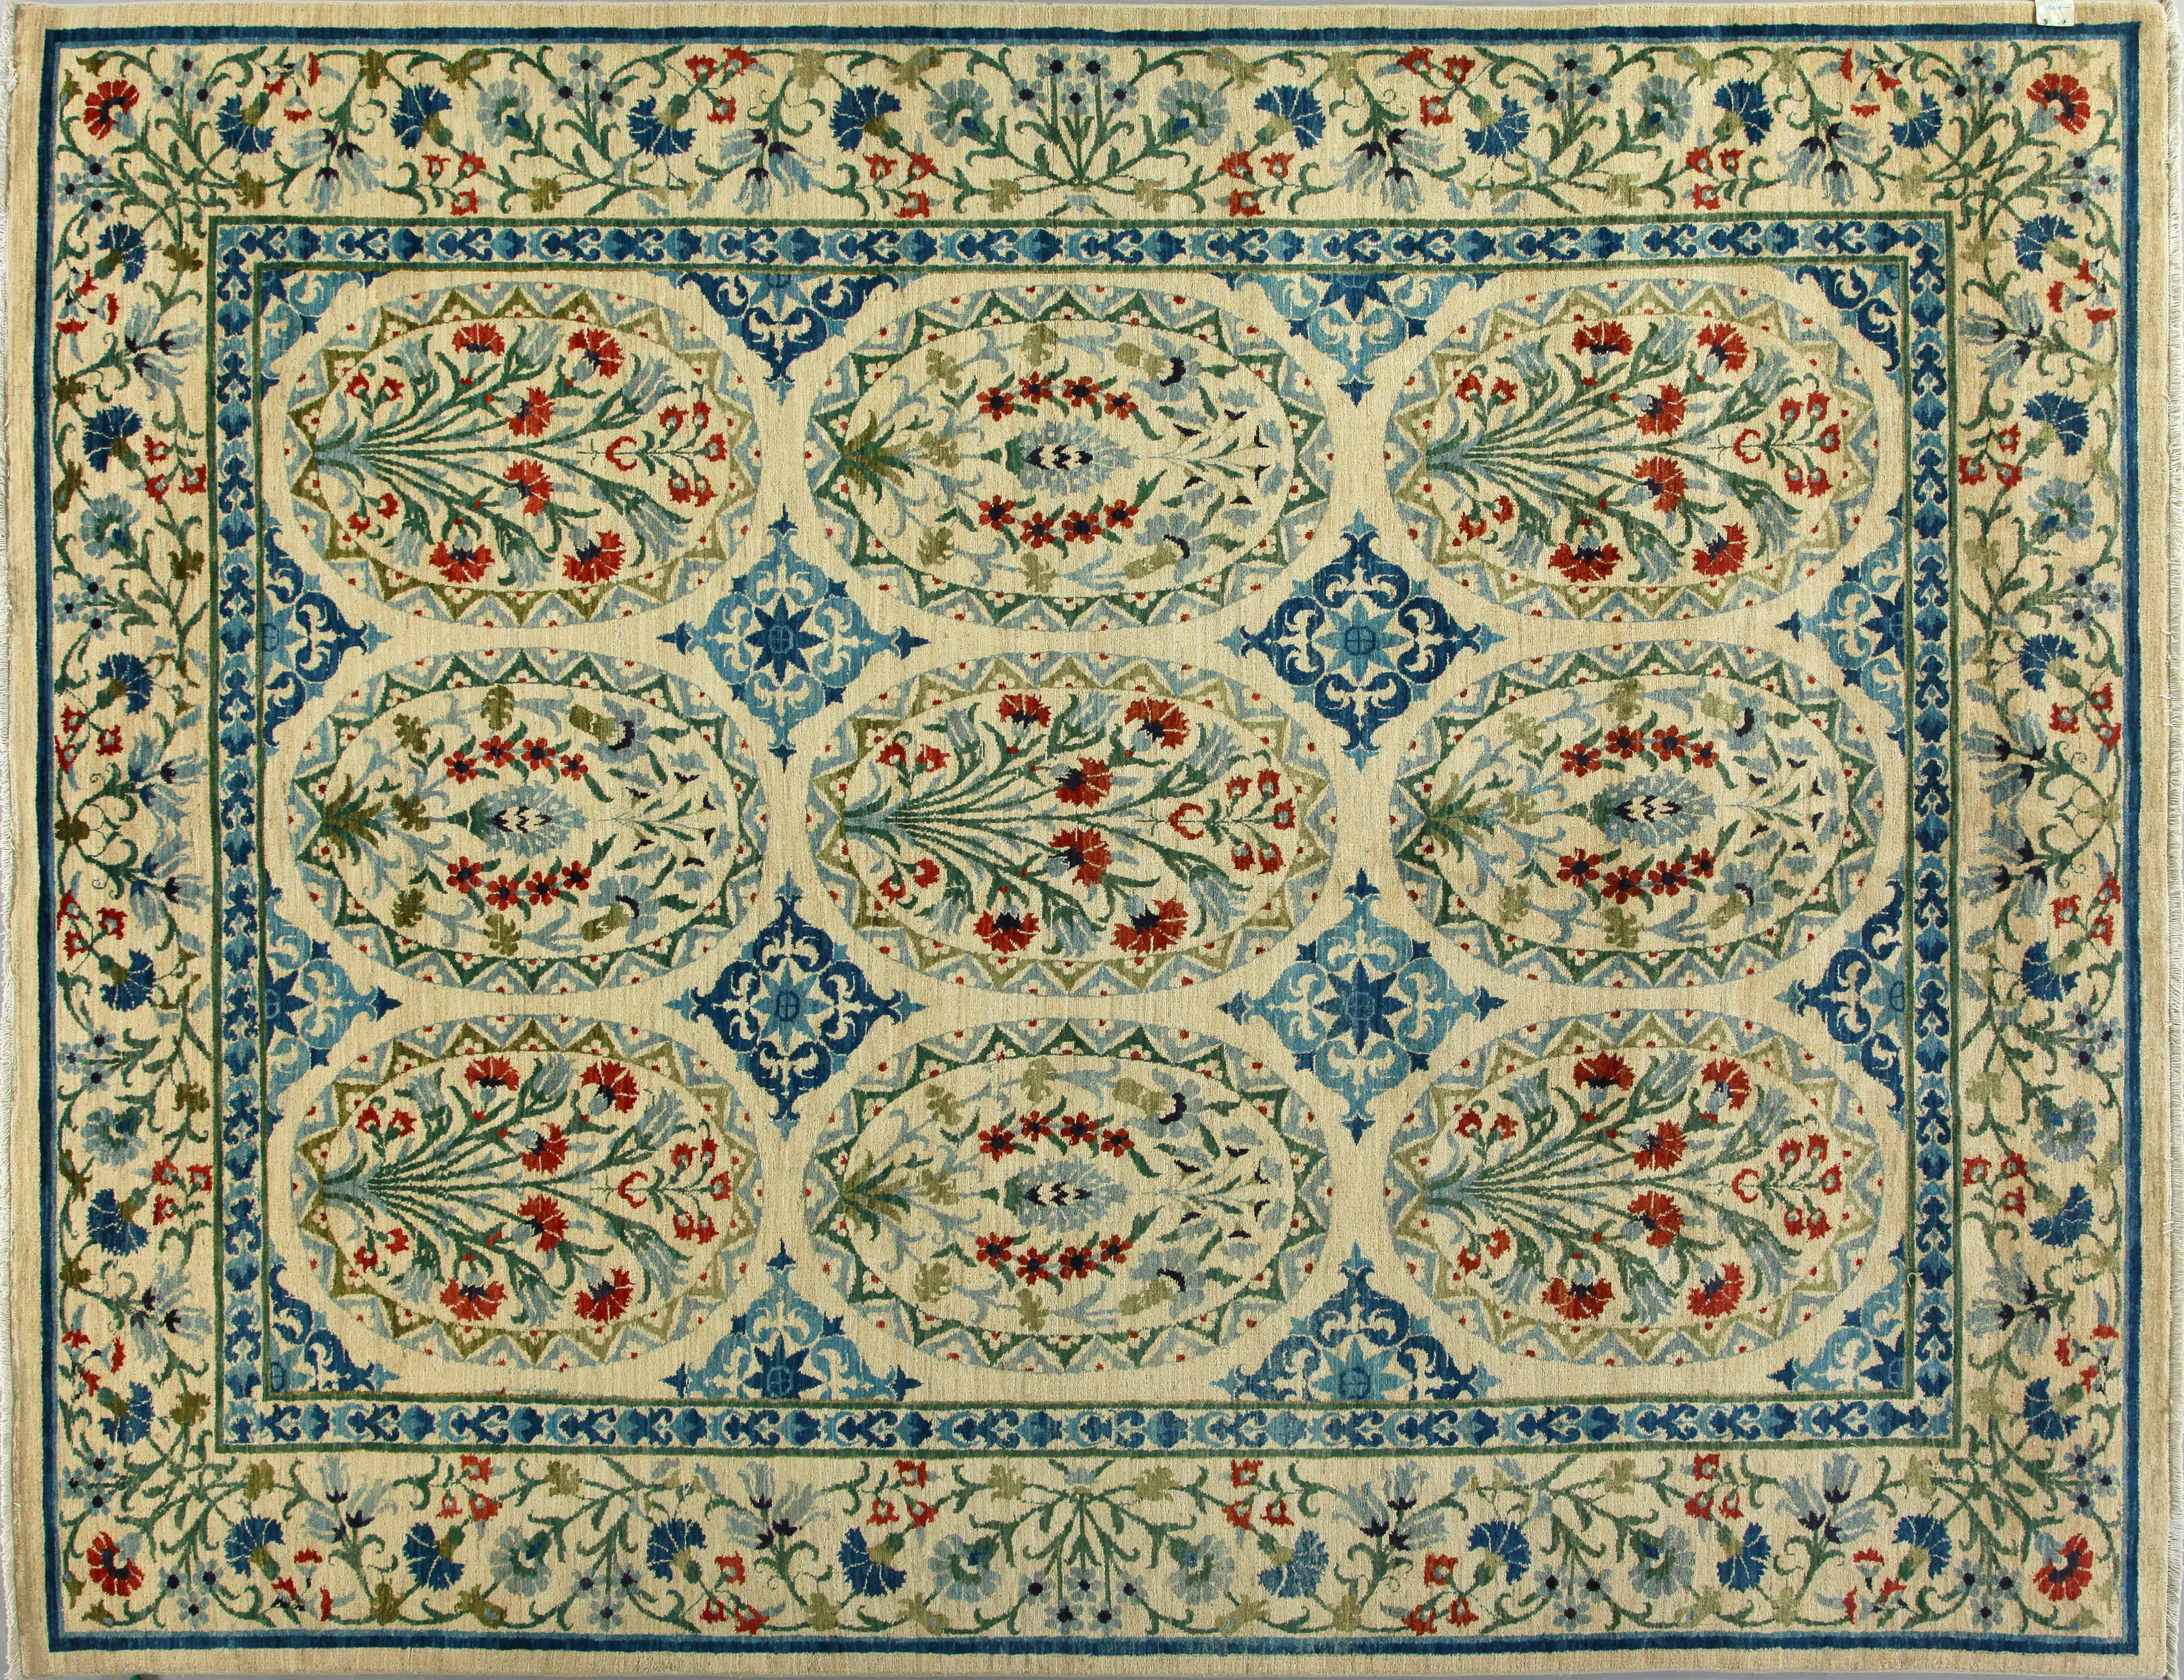 9x12 Contemporary Hand Knotted Wool Area Rug - MR17308